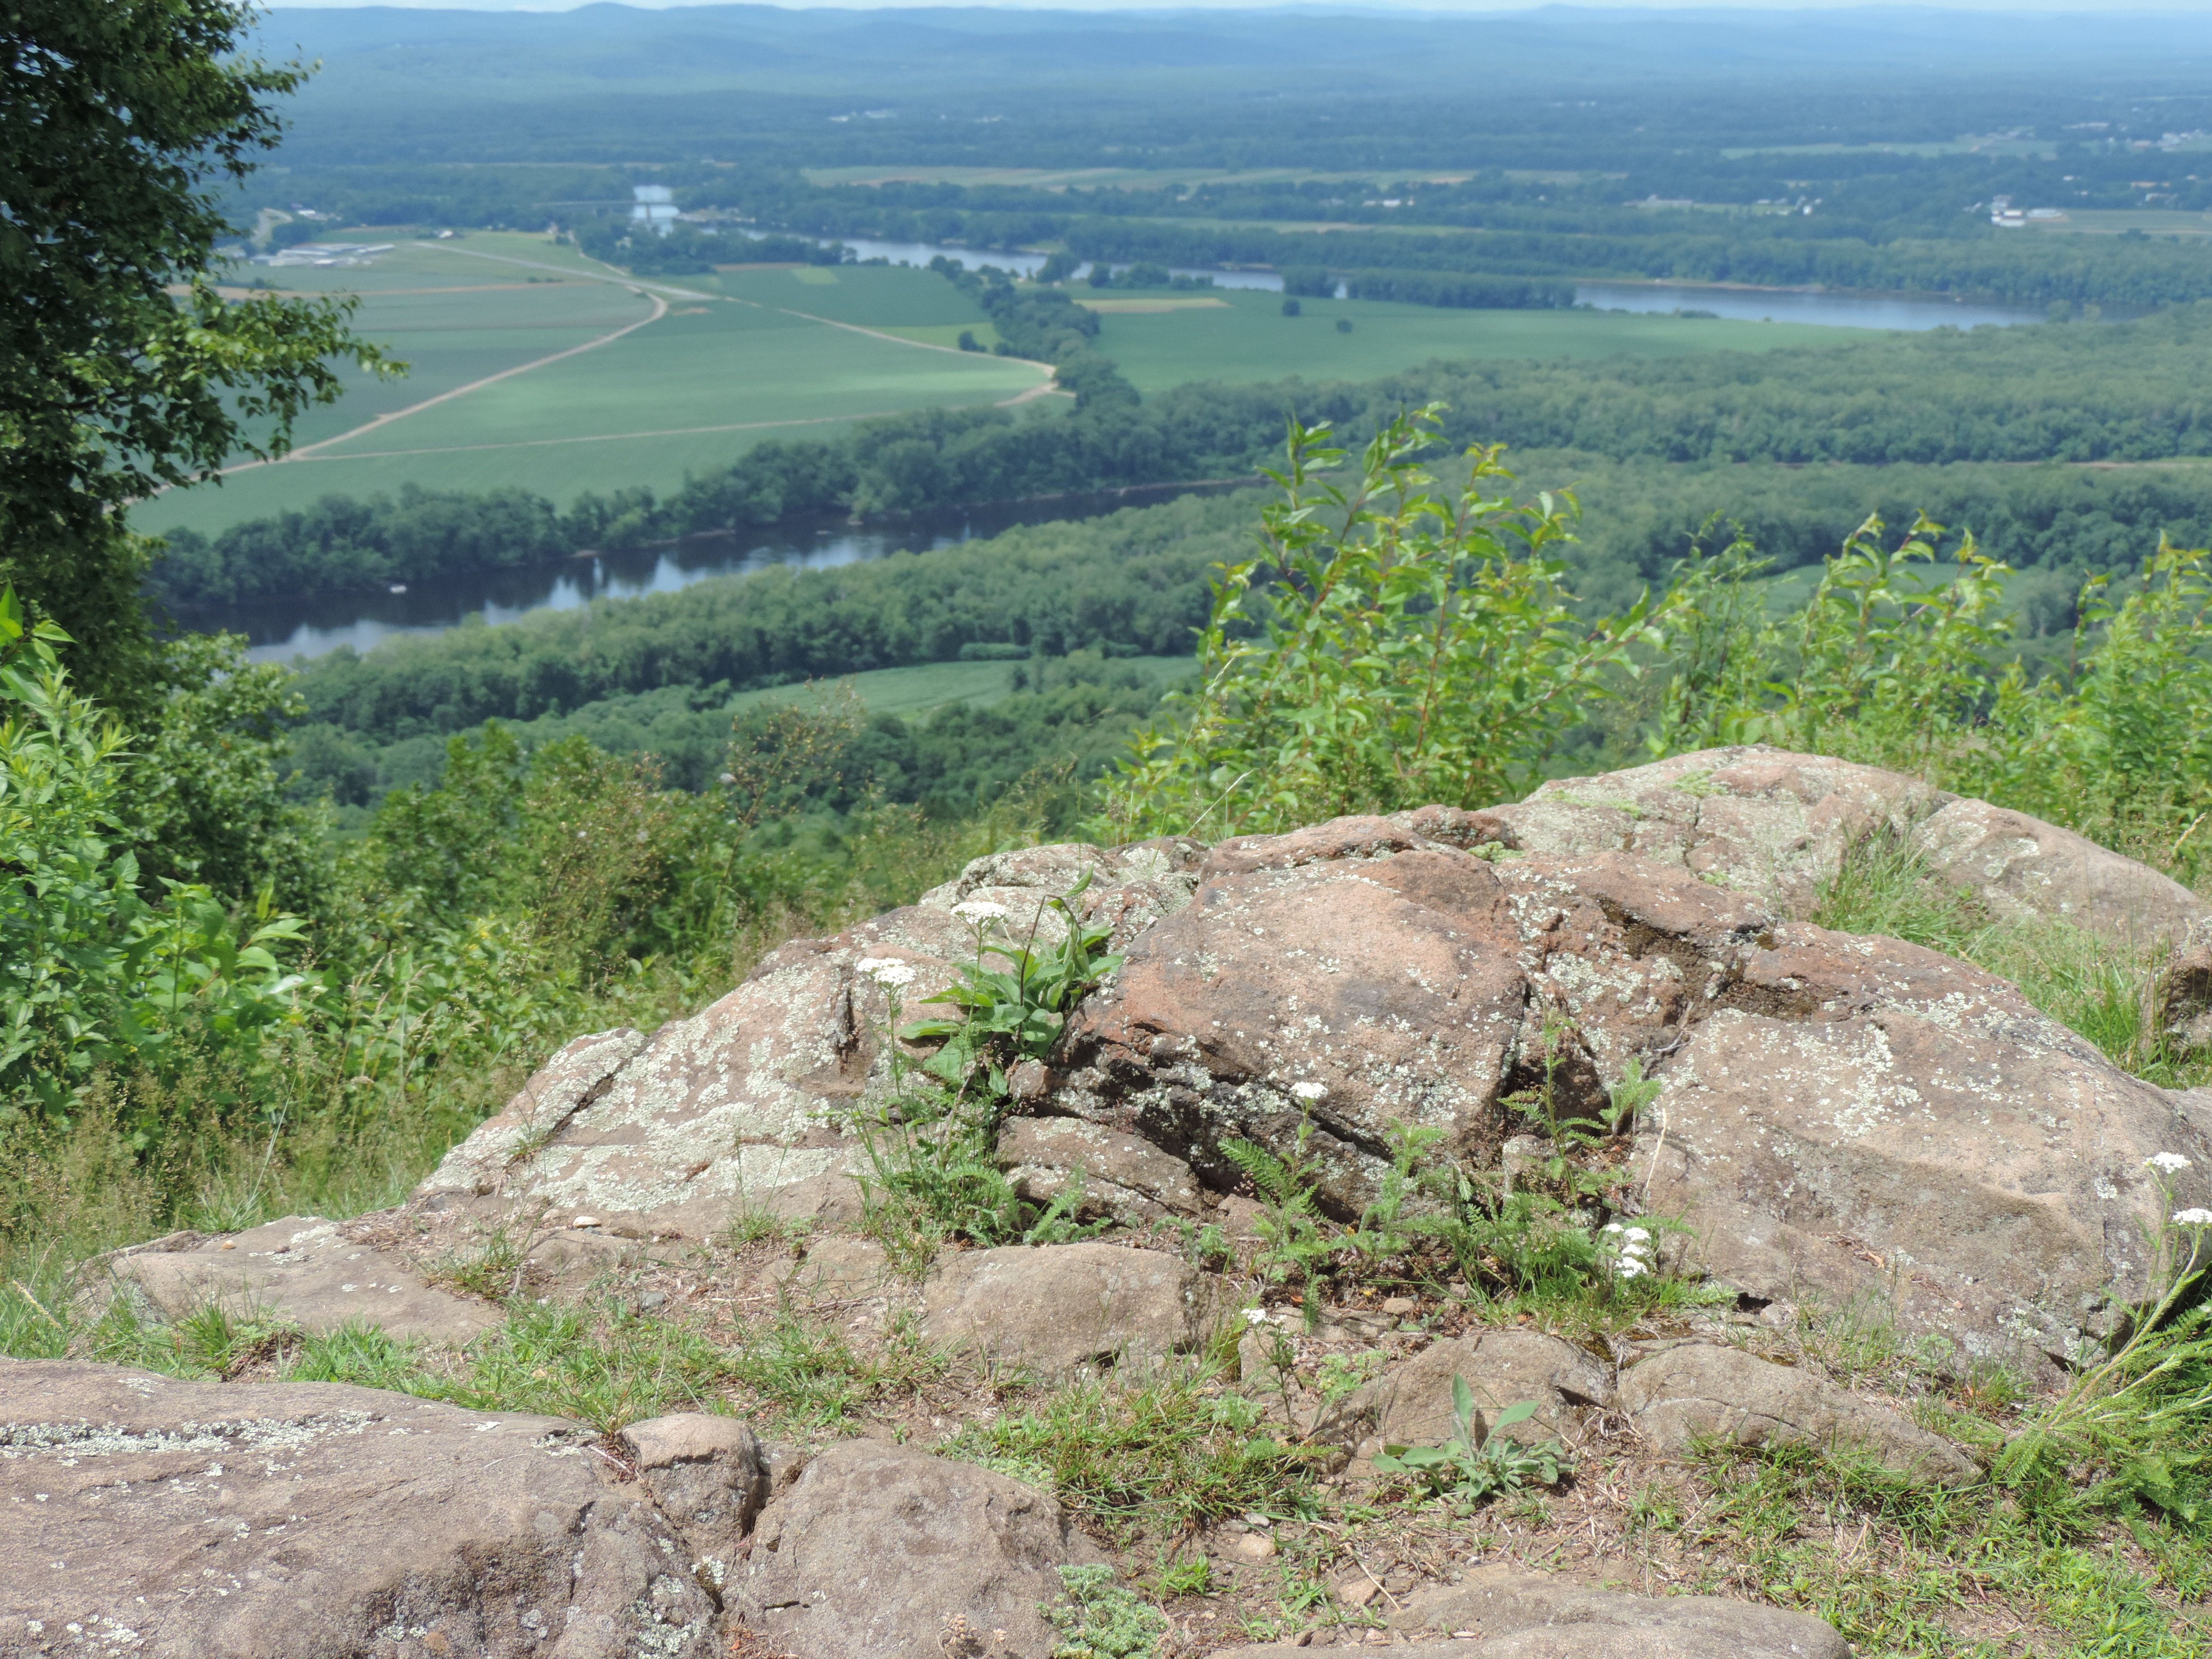 Overlooking Northampton Mass - took picture in July 2015 on a hot day!